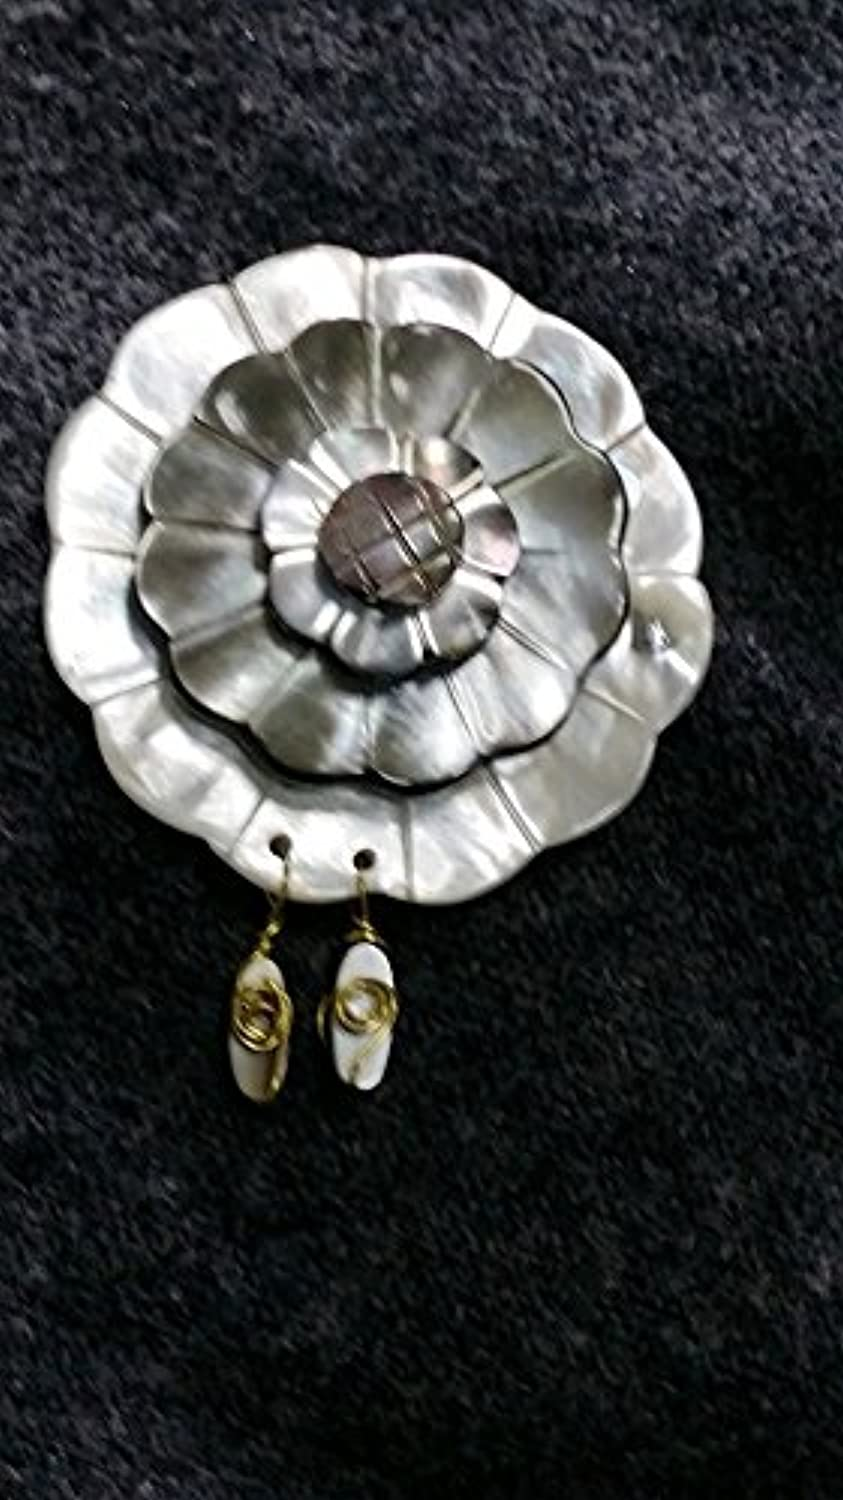 Designer Hand Carved Flower Brooch pin Badge Made Seashells can be Used in Two Ways When Falling Solitary Gorgeous Low-Key Delivery Chain